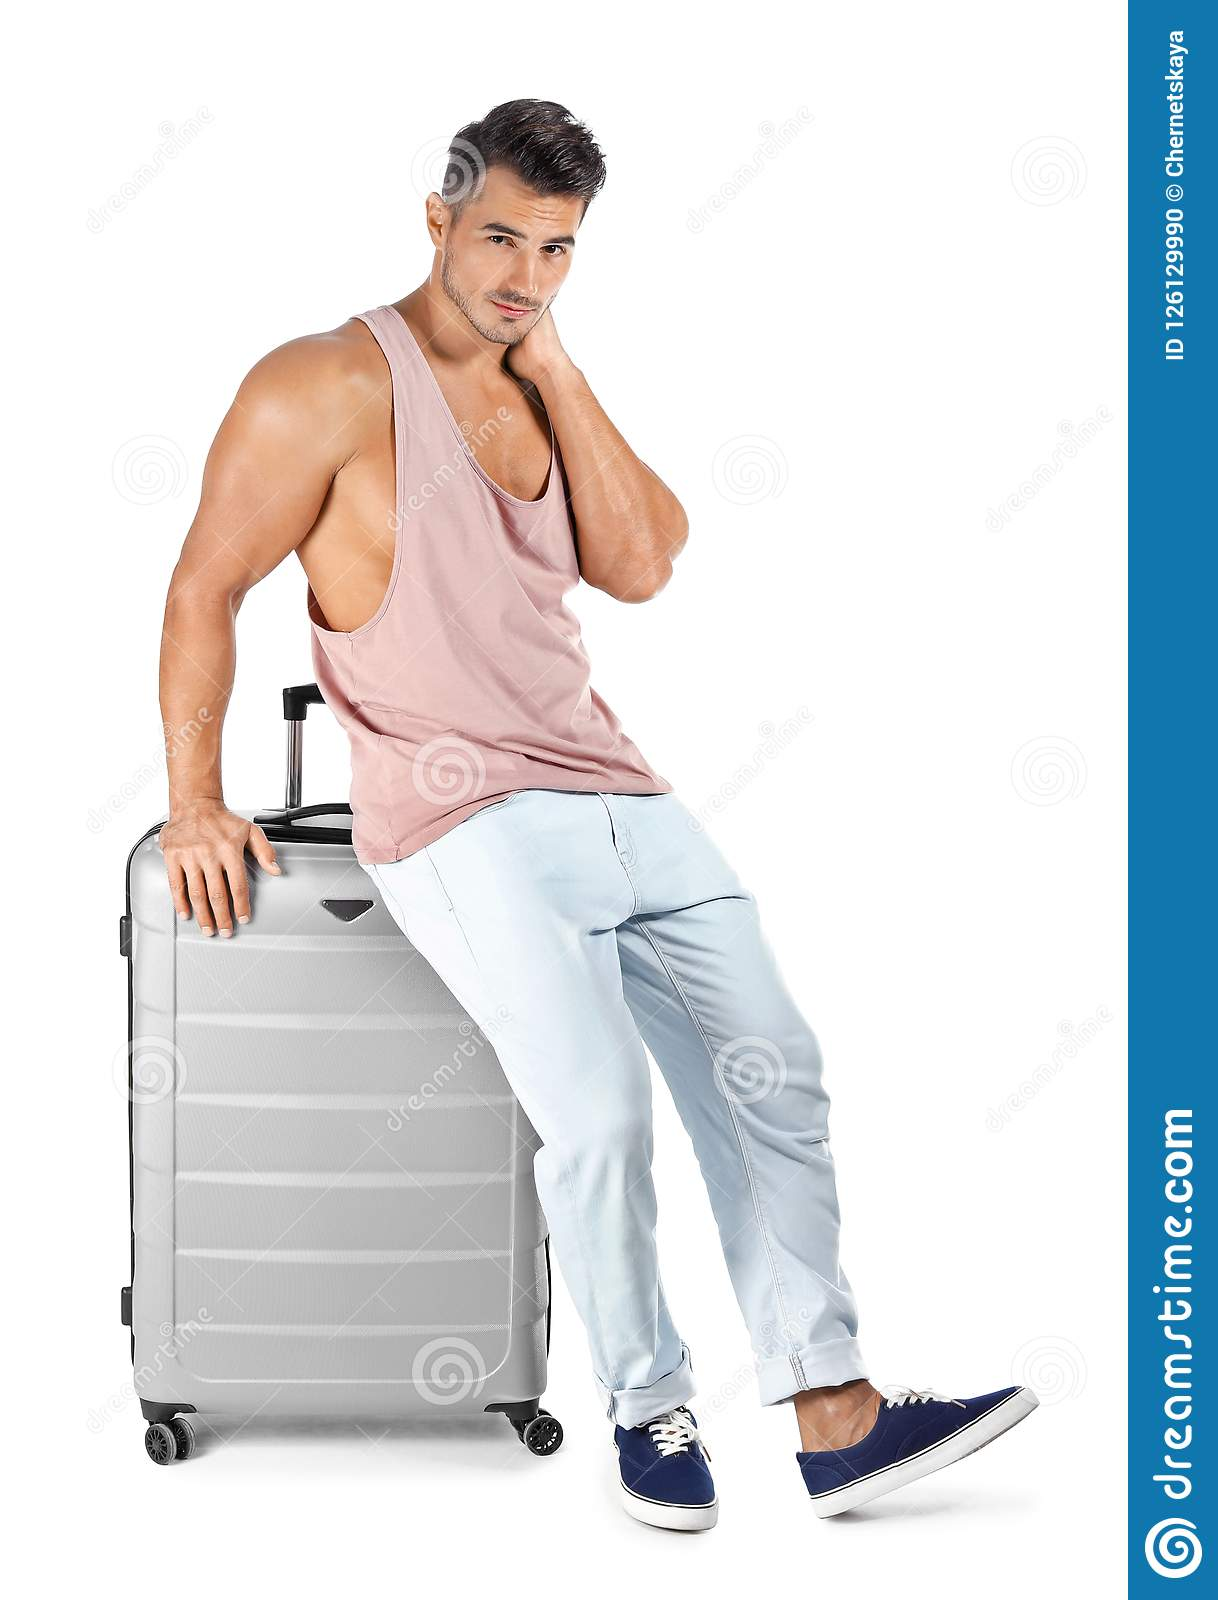 Shop away suitcases and luggage